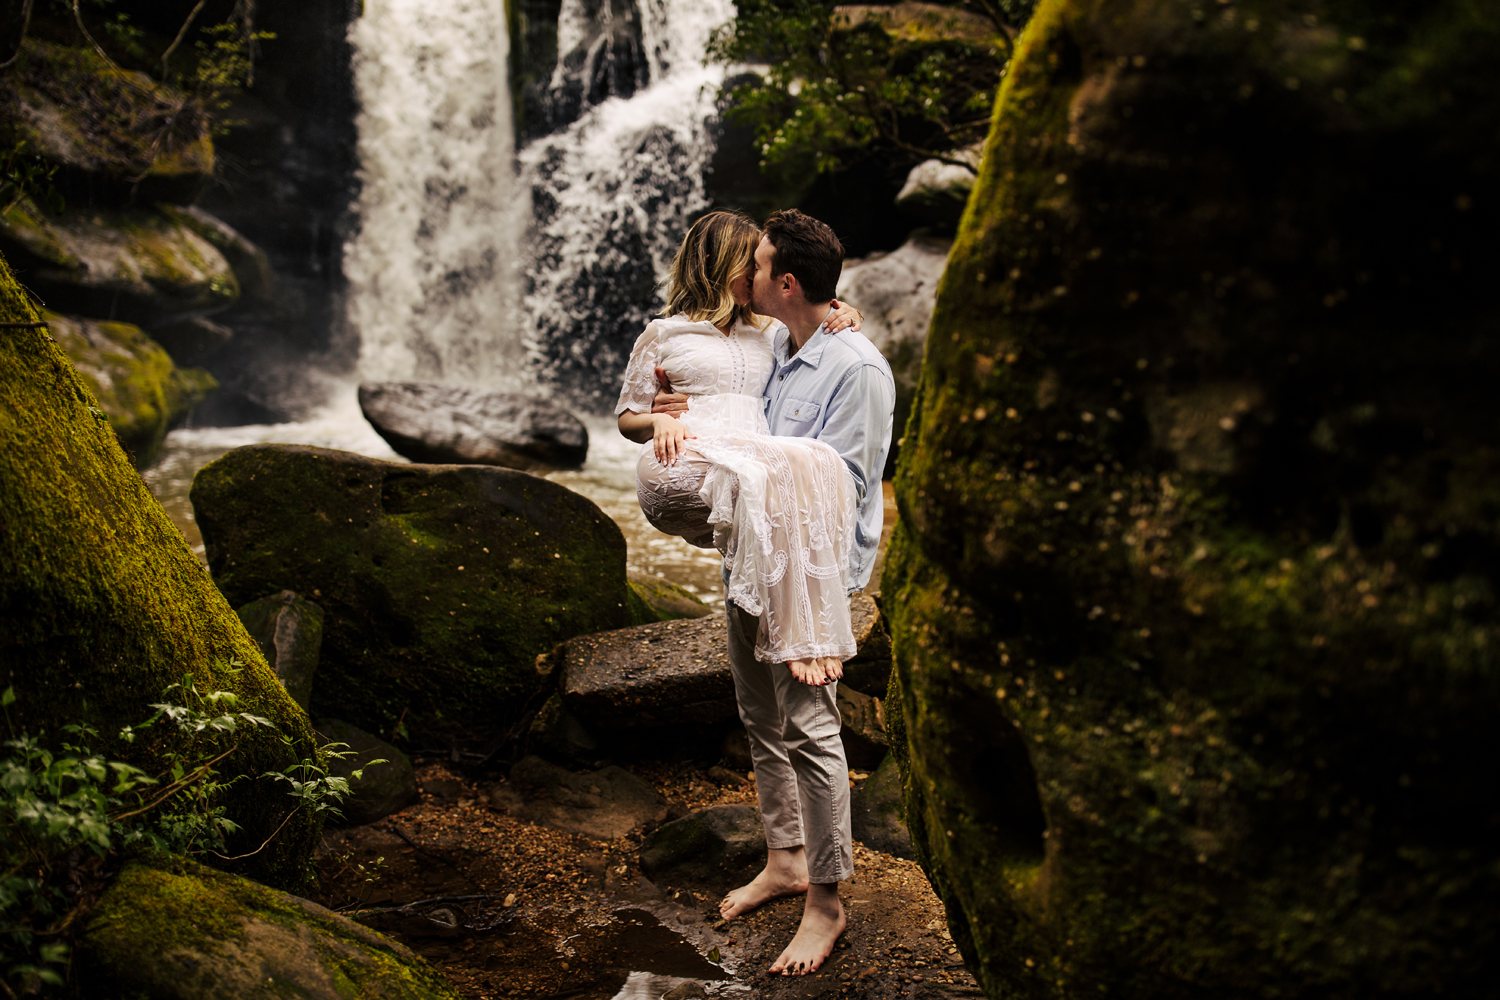 07-ck-photo-nashville-wedding-photographer-couples-2018.jpg